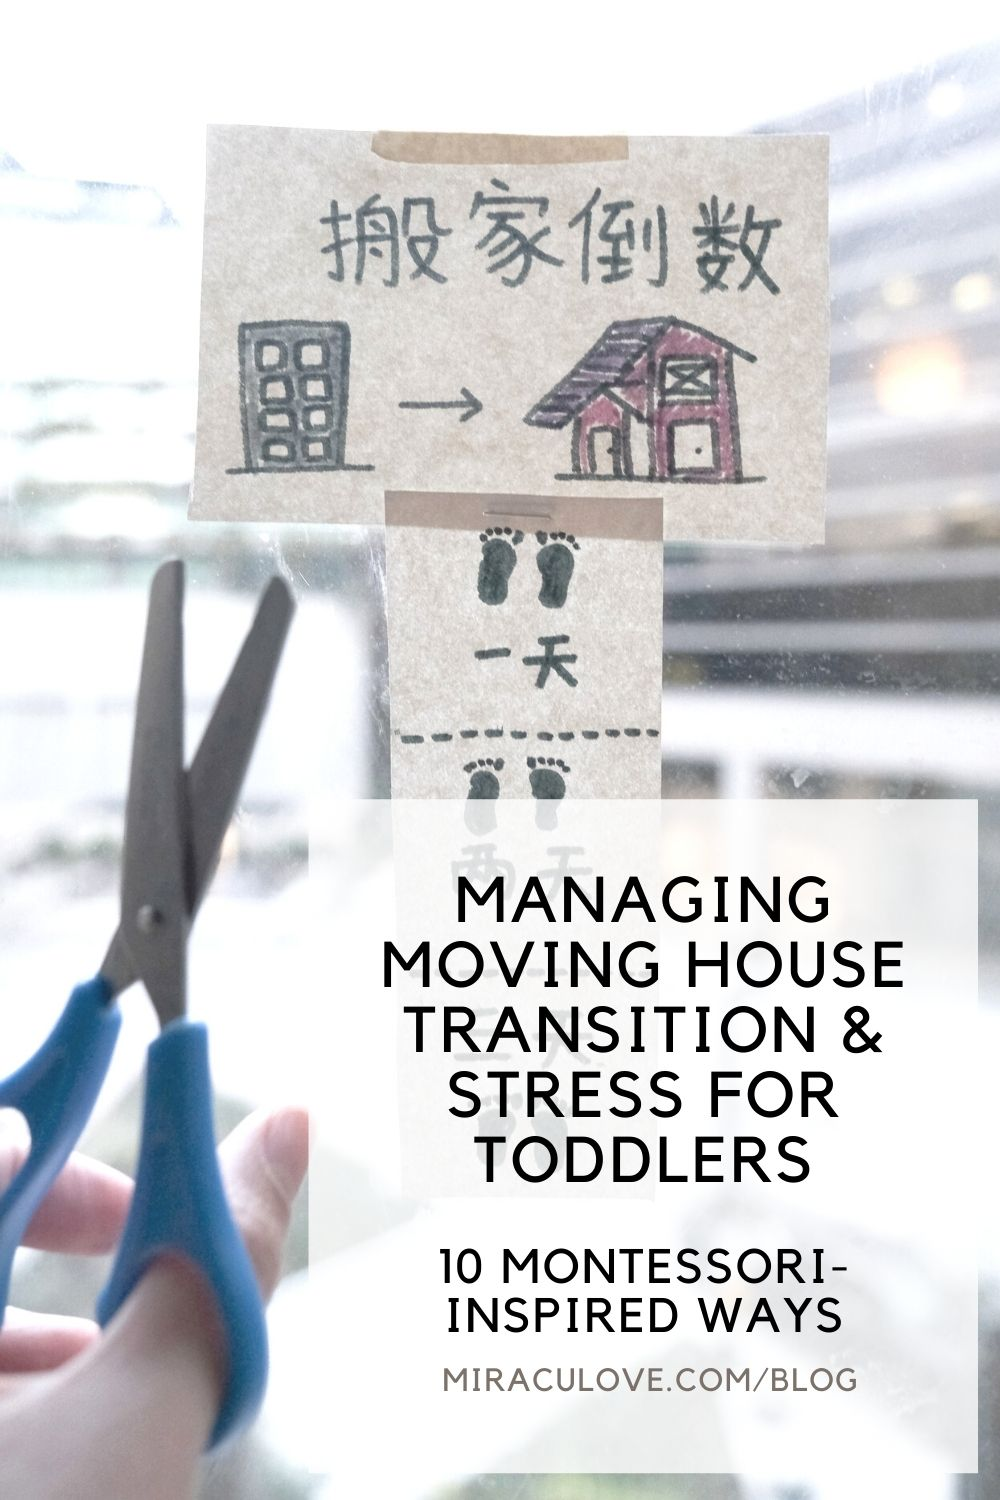 Managing Moving House Transition & Stress for Toddlers - 10 Montessori-inspired Ways